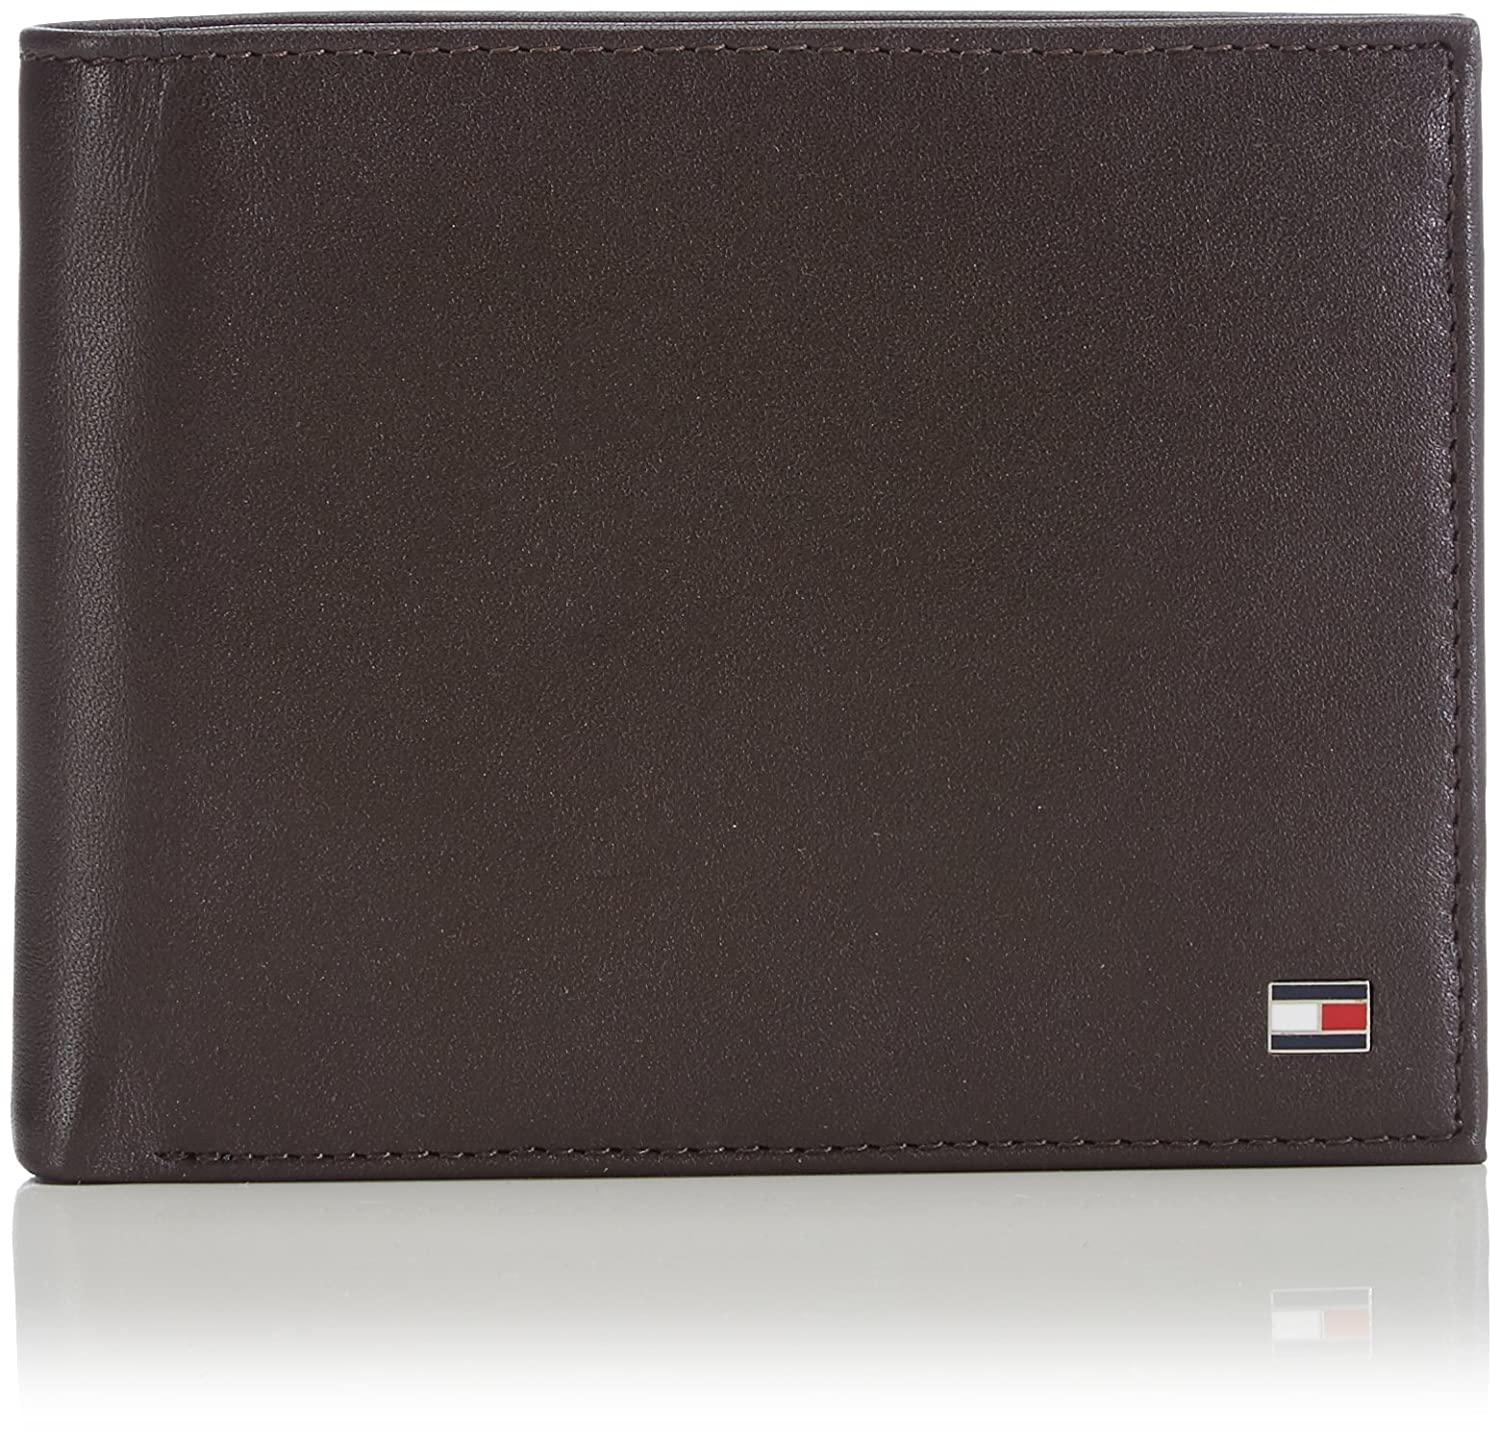 Tommy Hilfiger Eton Trifold, Mens Catera